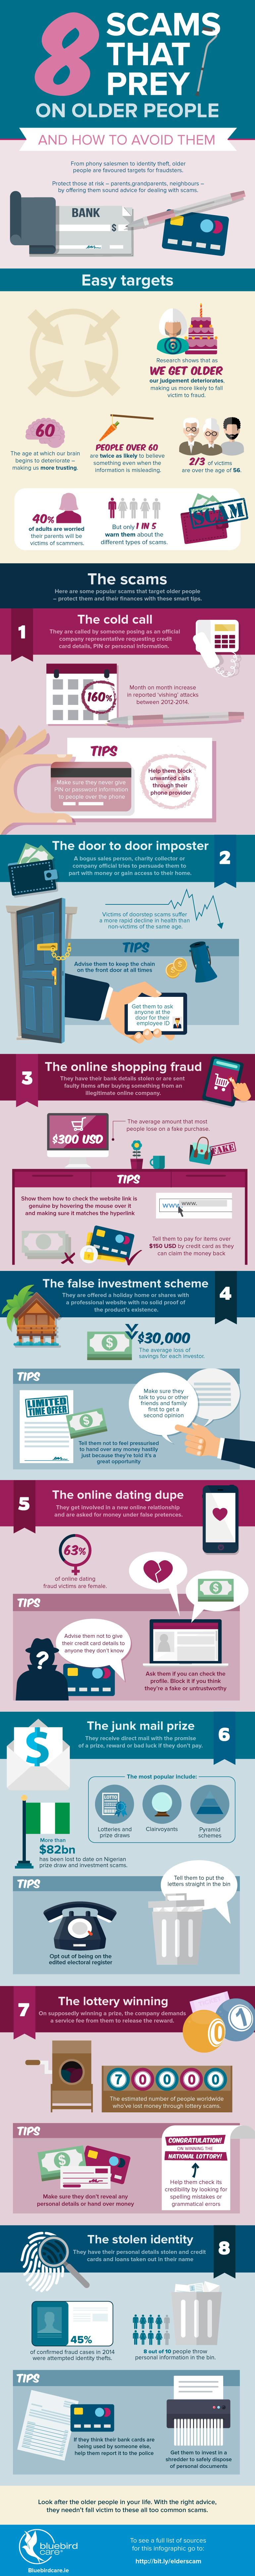 8-Scams-That-Prey-on-Older-People-Infographic